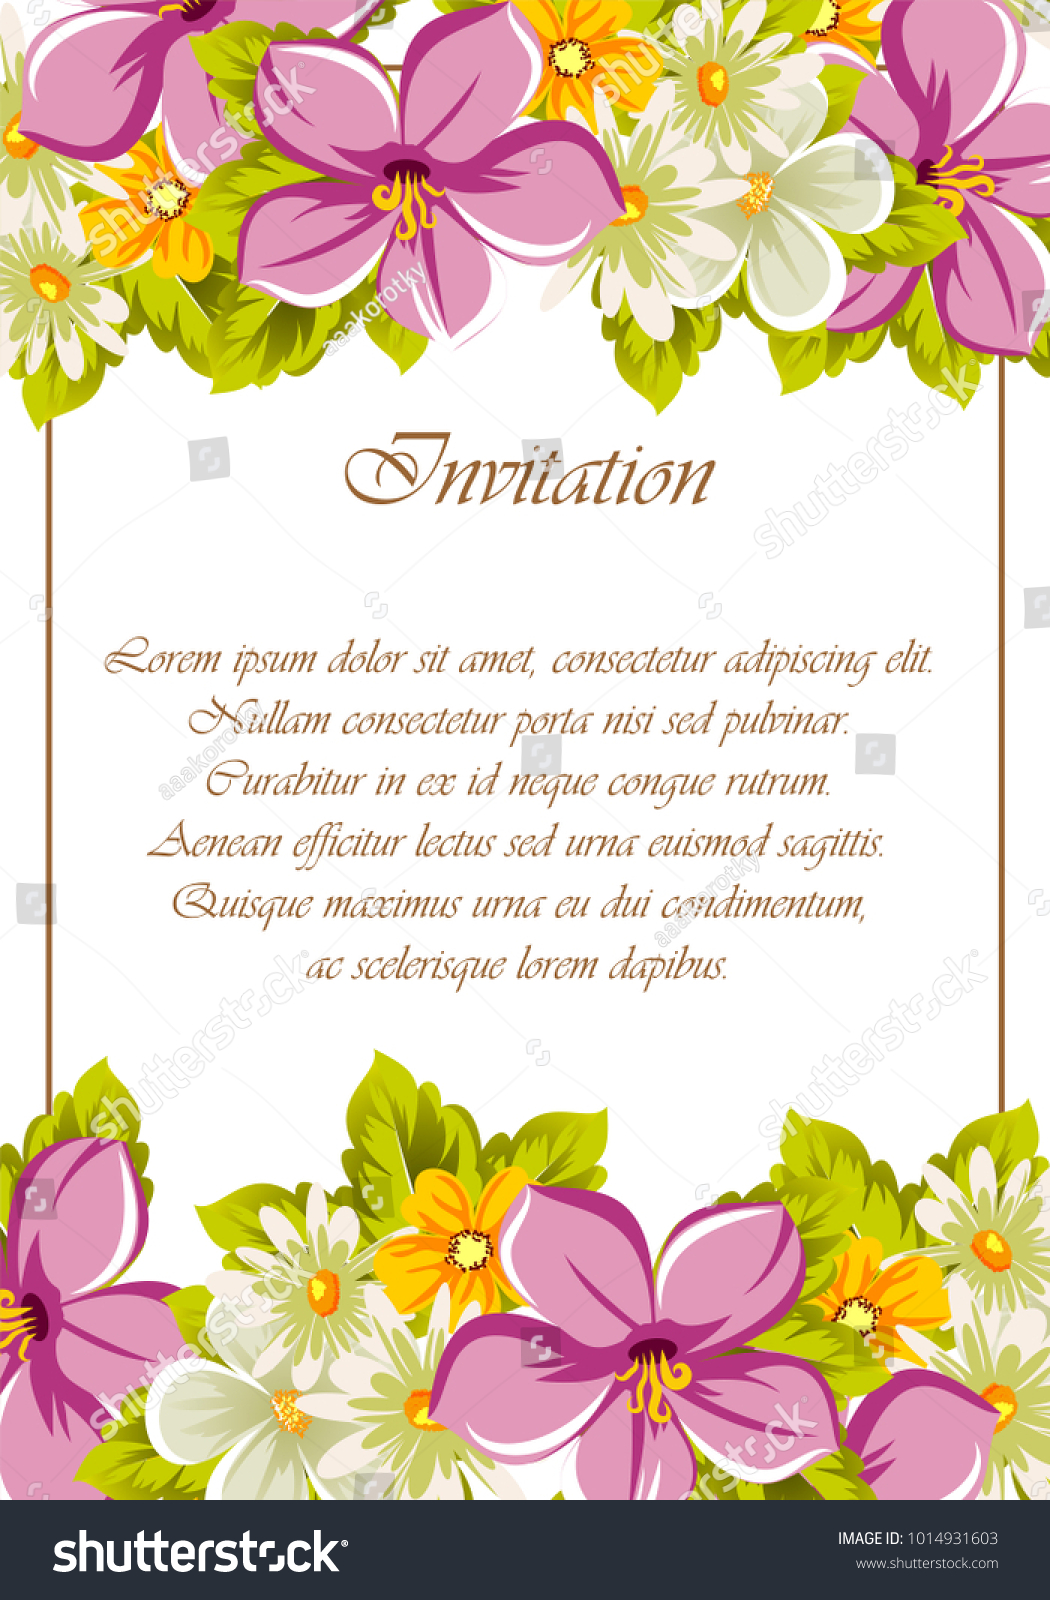 Beautiful frames your text flowers design stock vector royalty free beautiful frames for your text from the flowers for design postcards greeting invitation izmirmasajfo